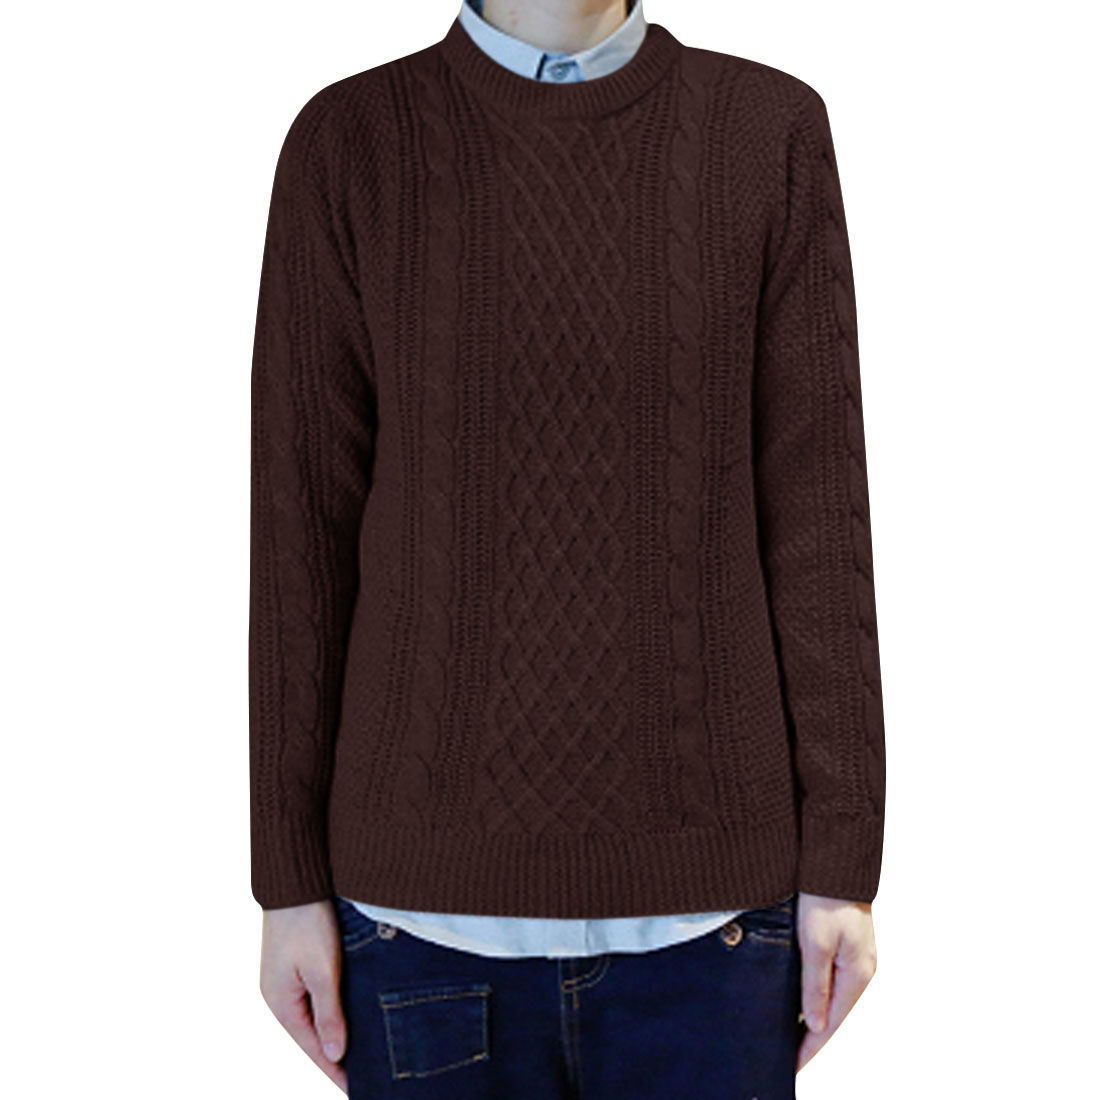 Men Pullover Braided Autumn Wearing Sweater Coffee M